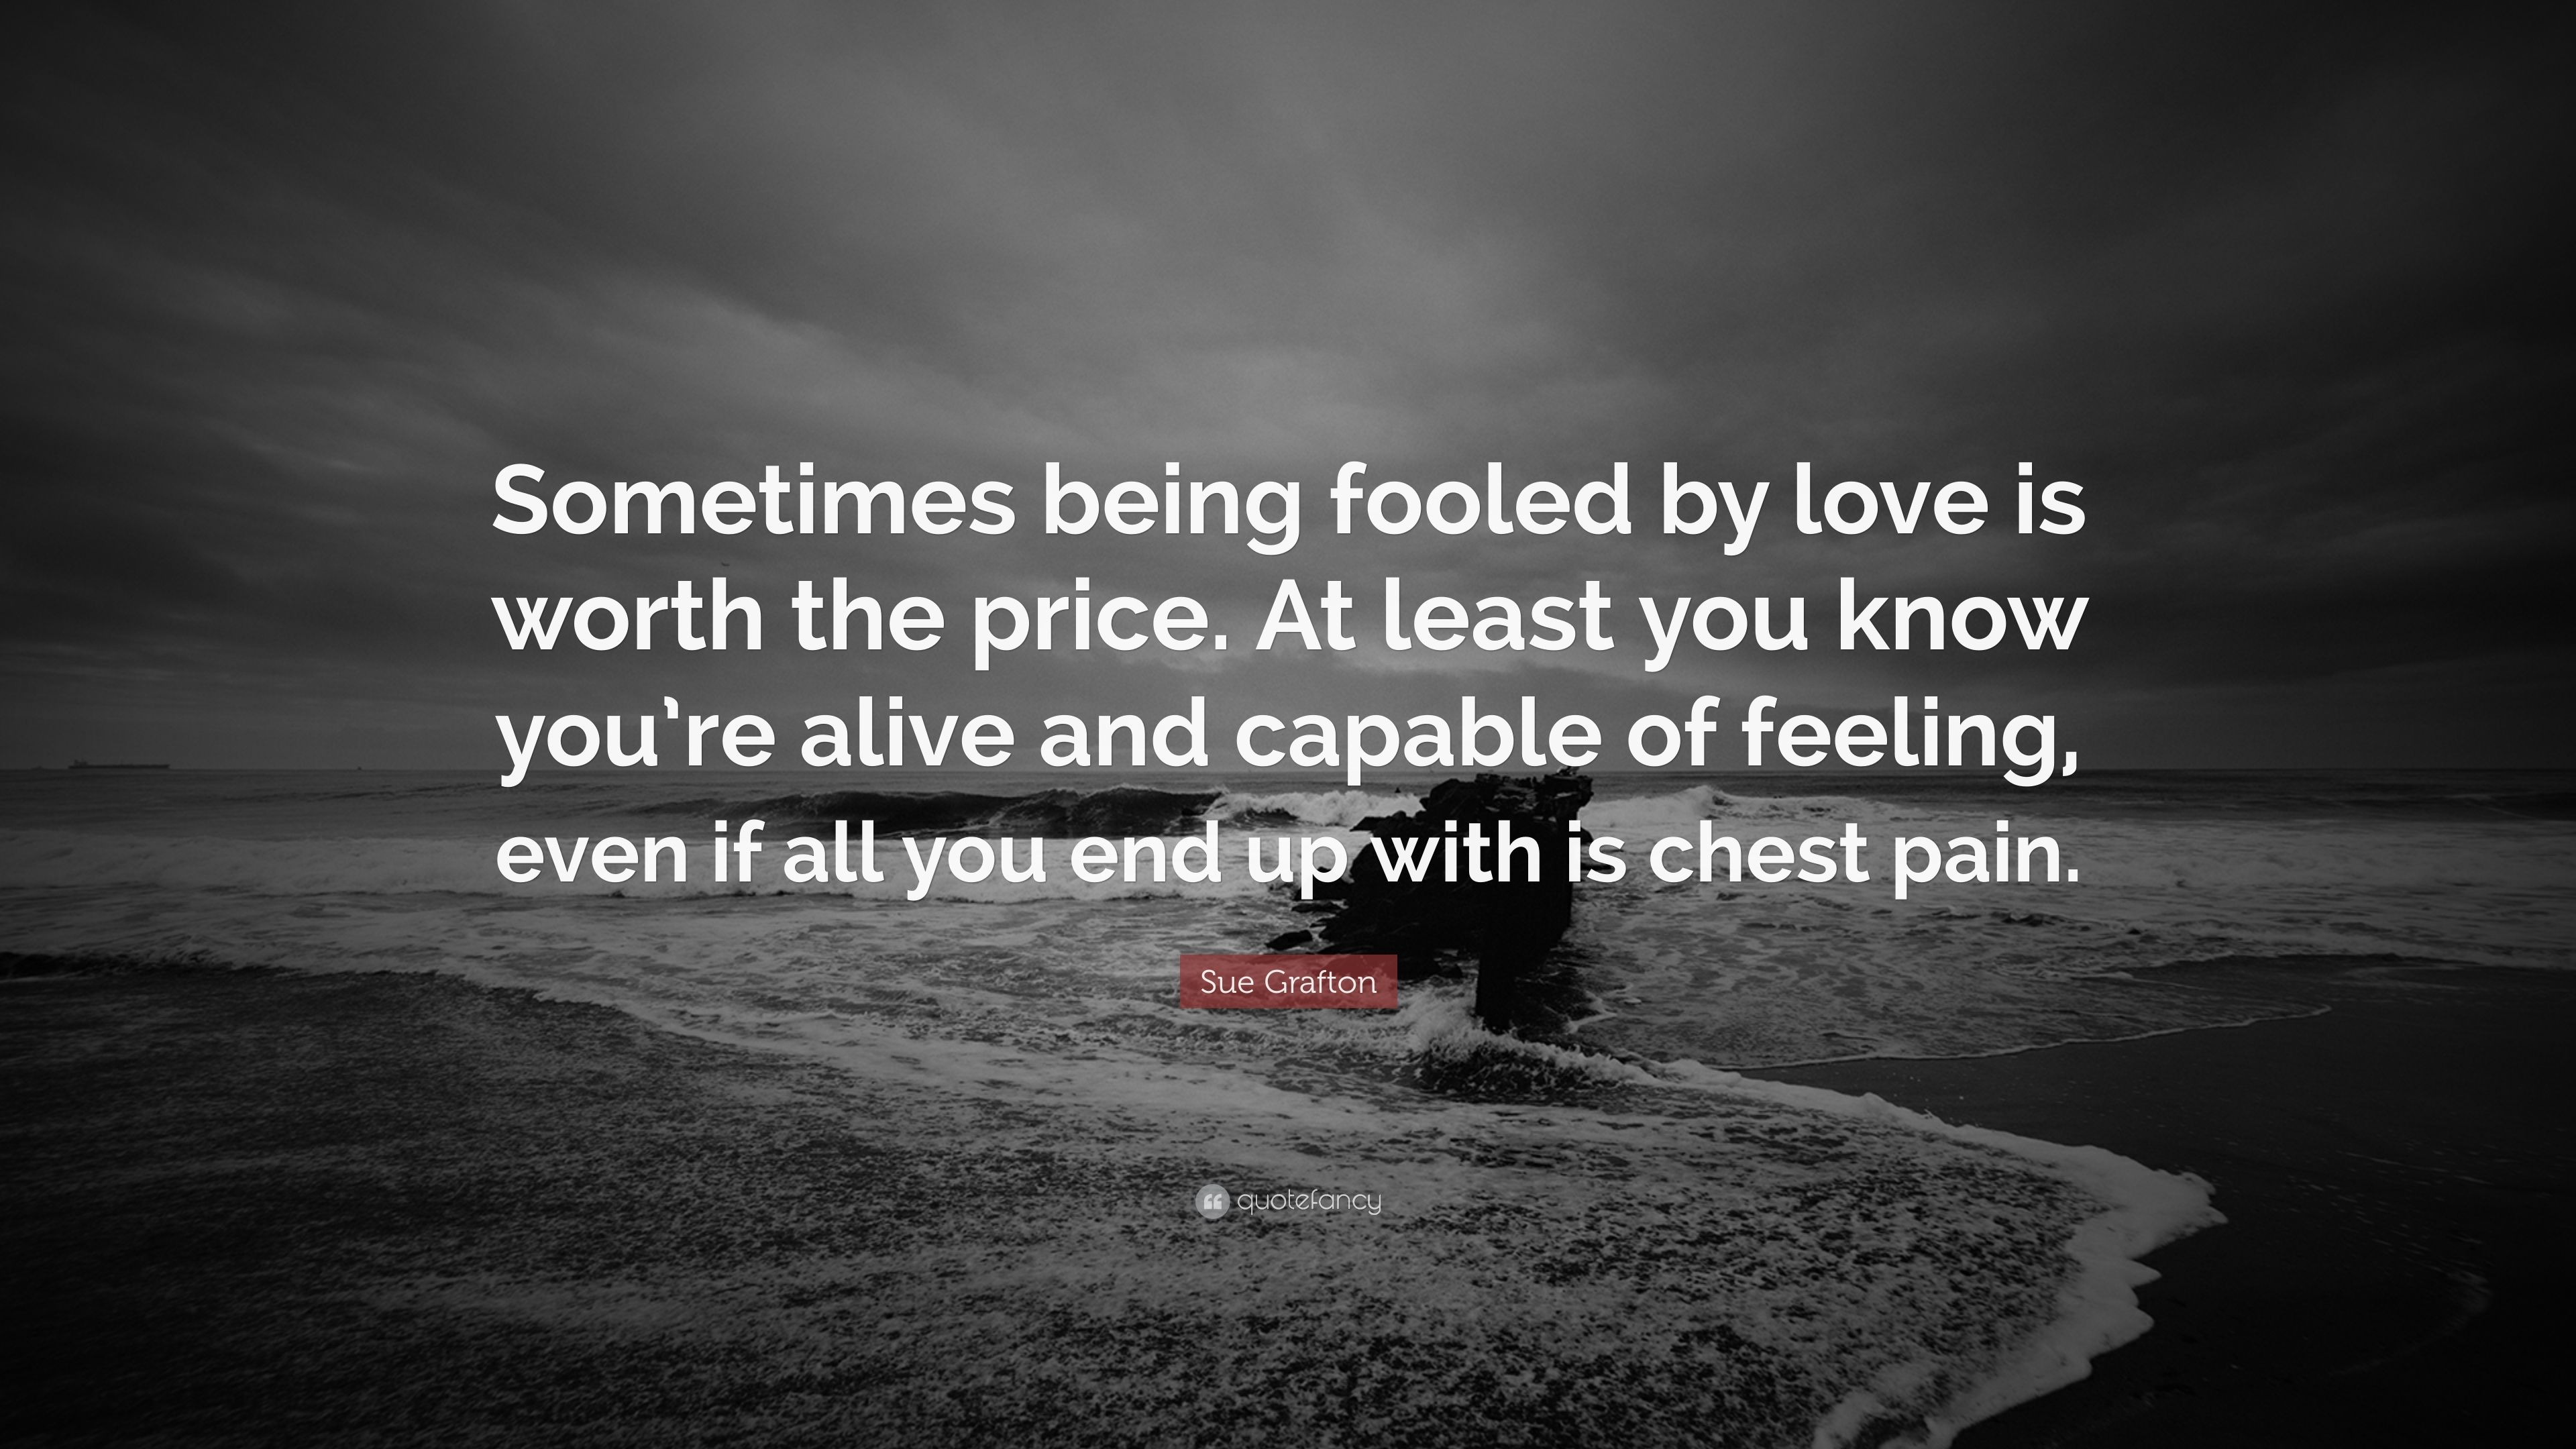 Quotes About Being Fooled In Love - positive quotes